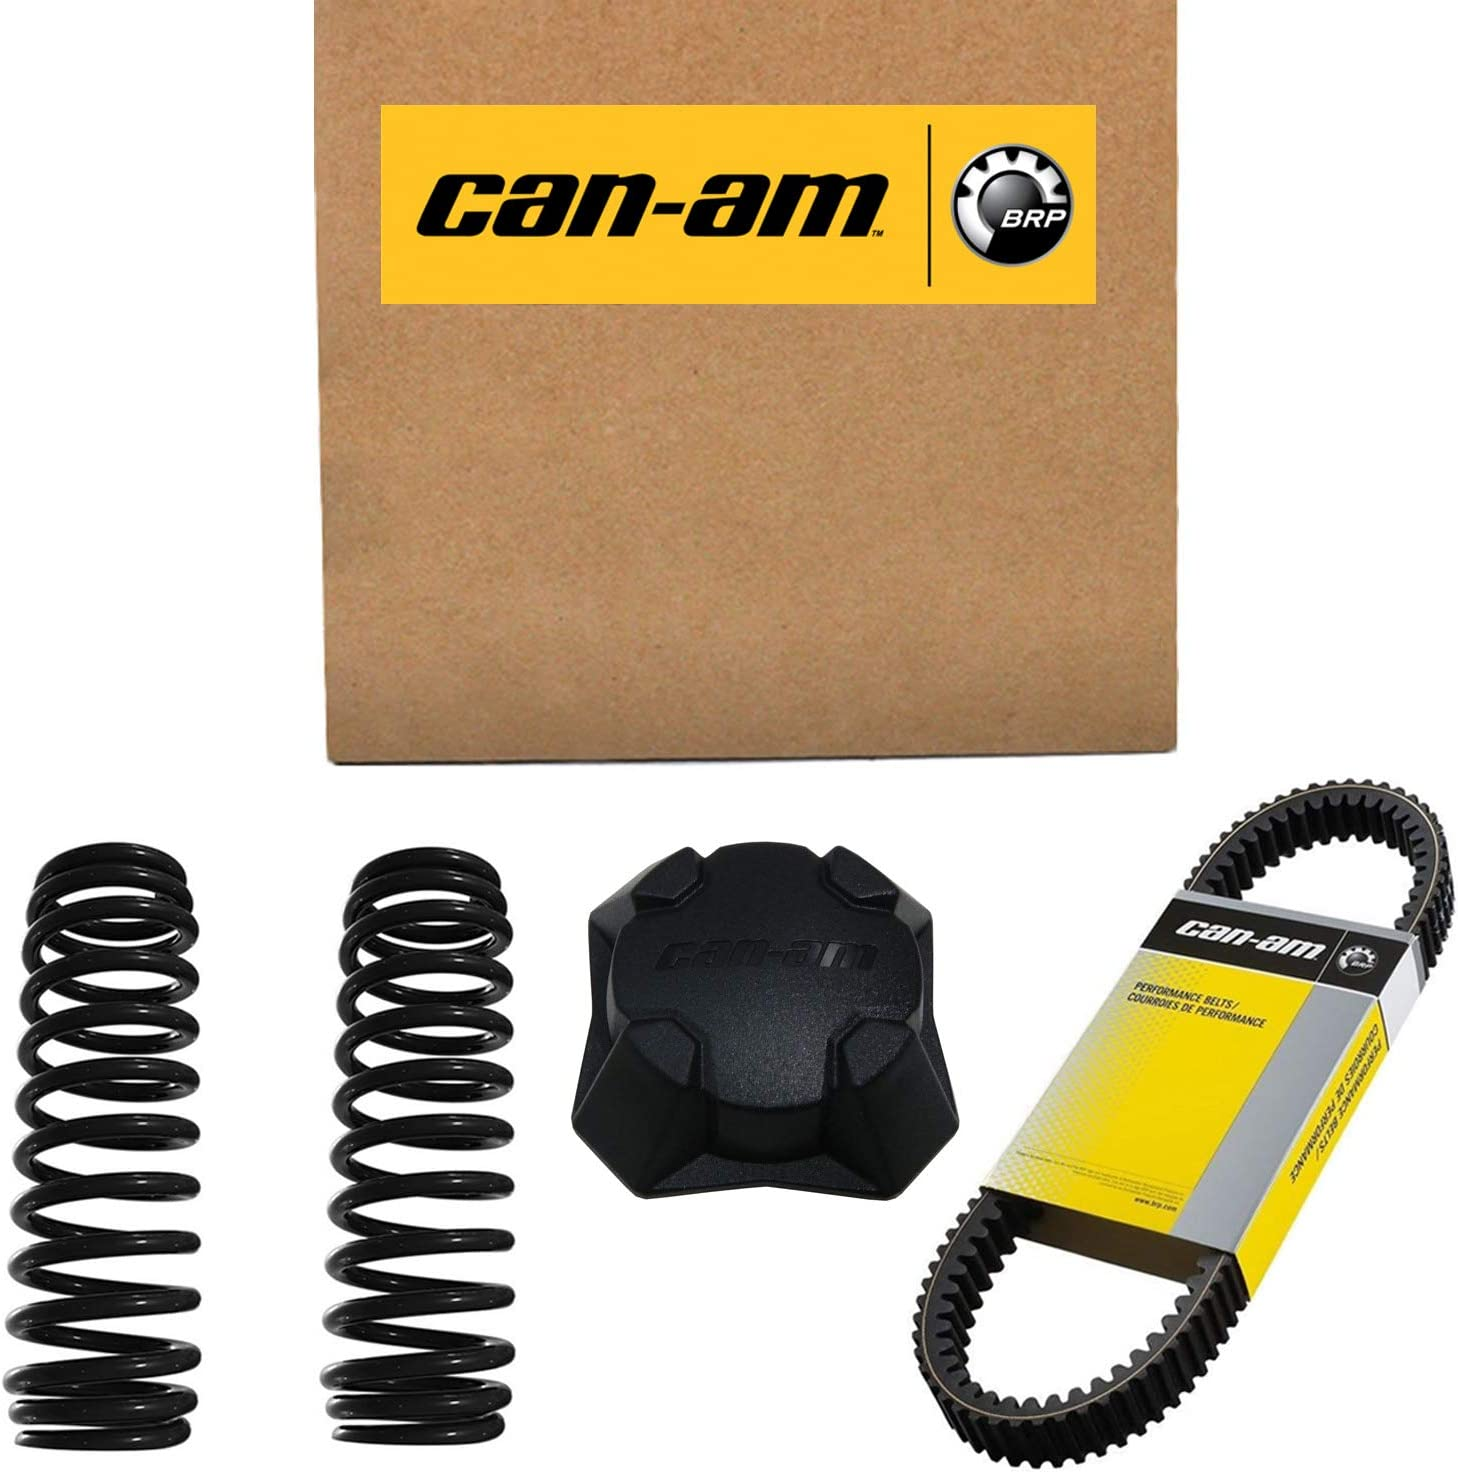 Can-Am New Max 79% OFF Max 43% OFF OEM Console Cap Kit 715006098